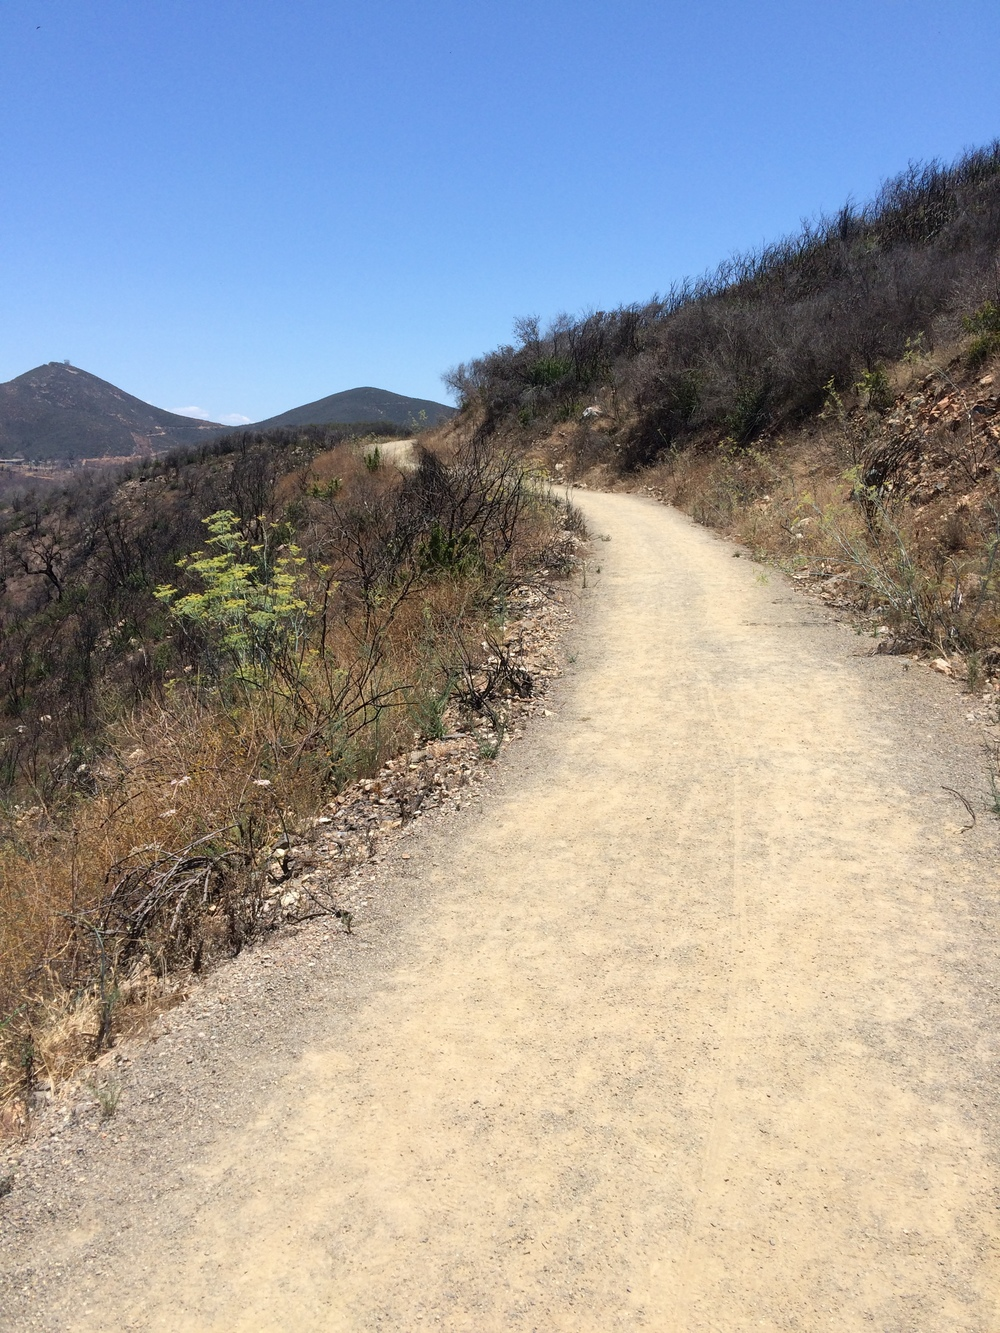 CJ showed me this gravel hiking trail that had no idea about, despite it being right off of my favorite North County climb, Double Peak.